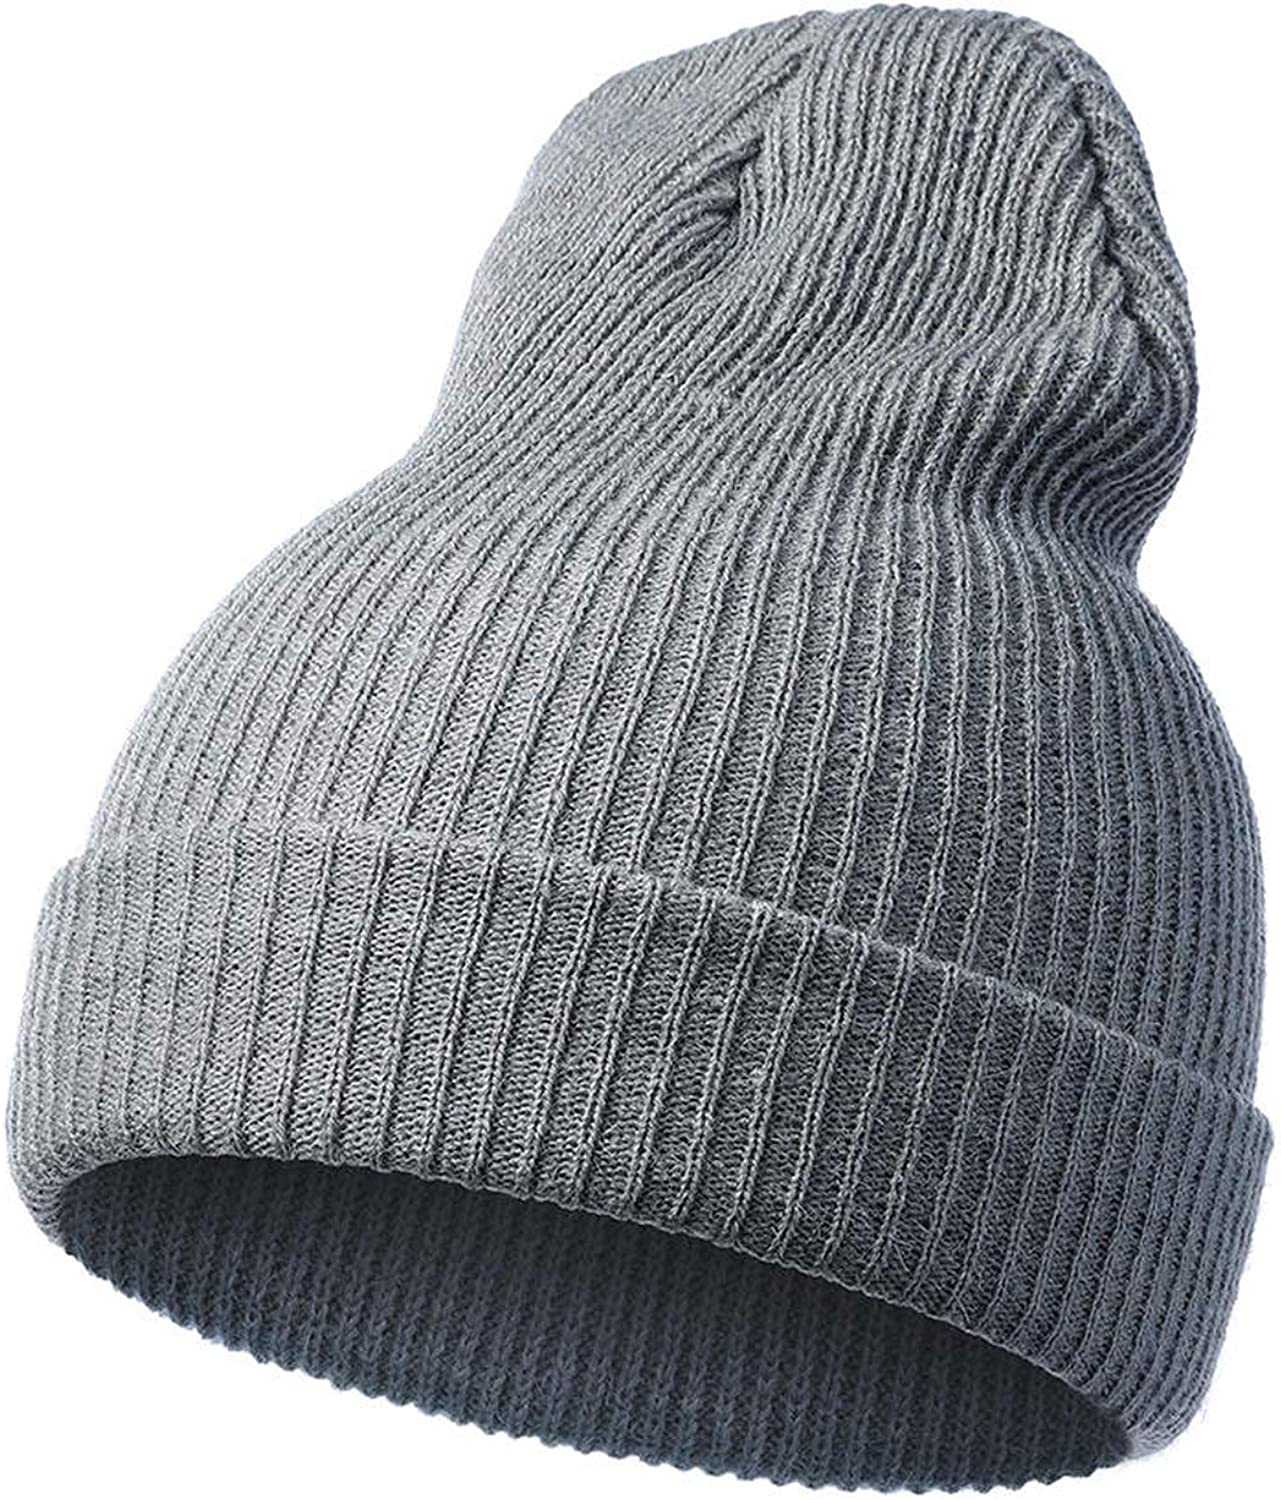 Women Autumn Winter Rabbit Hair Hat Fashion Winter Knitted Wool Hats for Girls Solid Caps